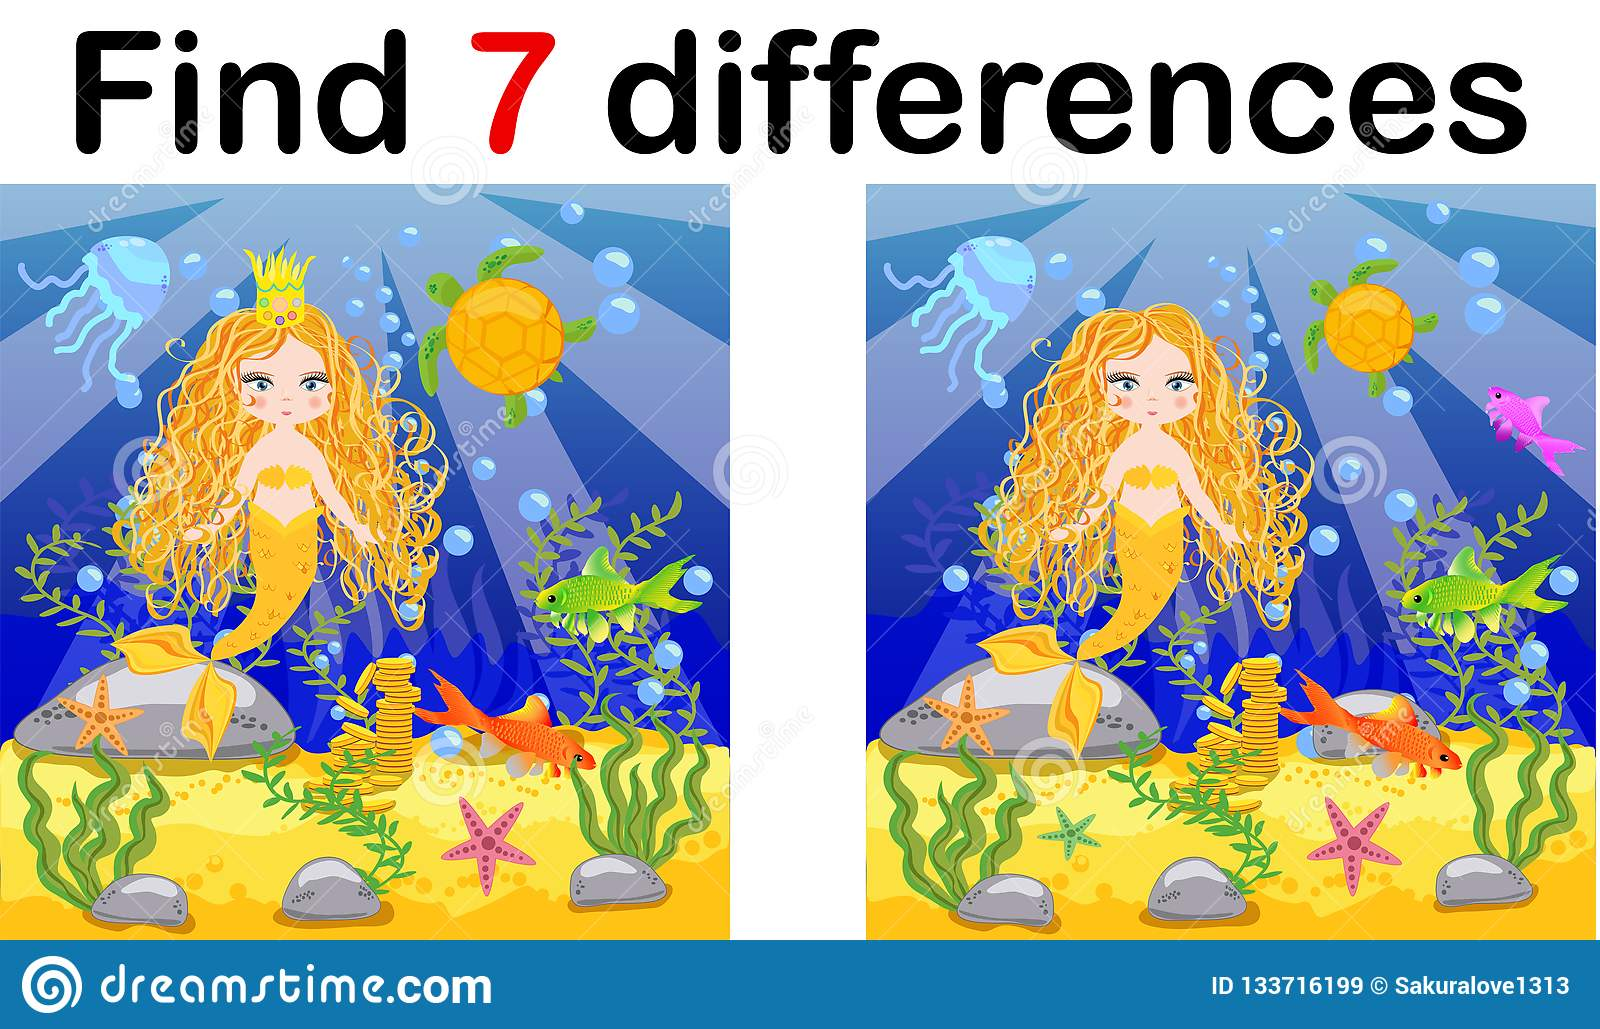 Mermaid Cartoon Stock Images - Download 88 Royalty Free Photos